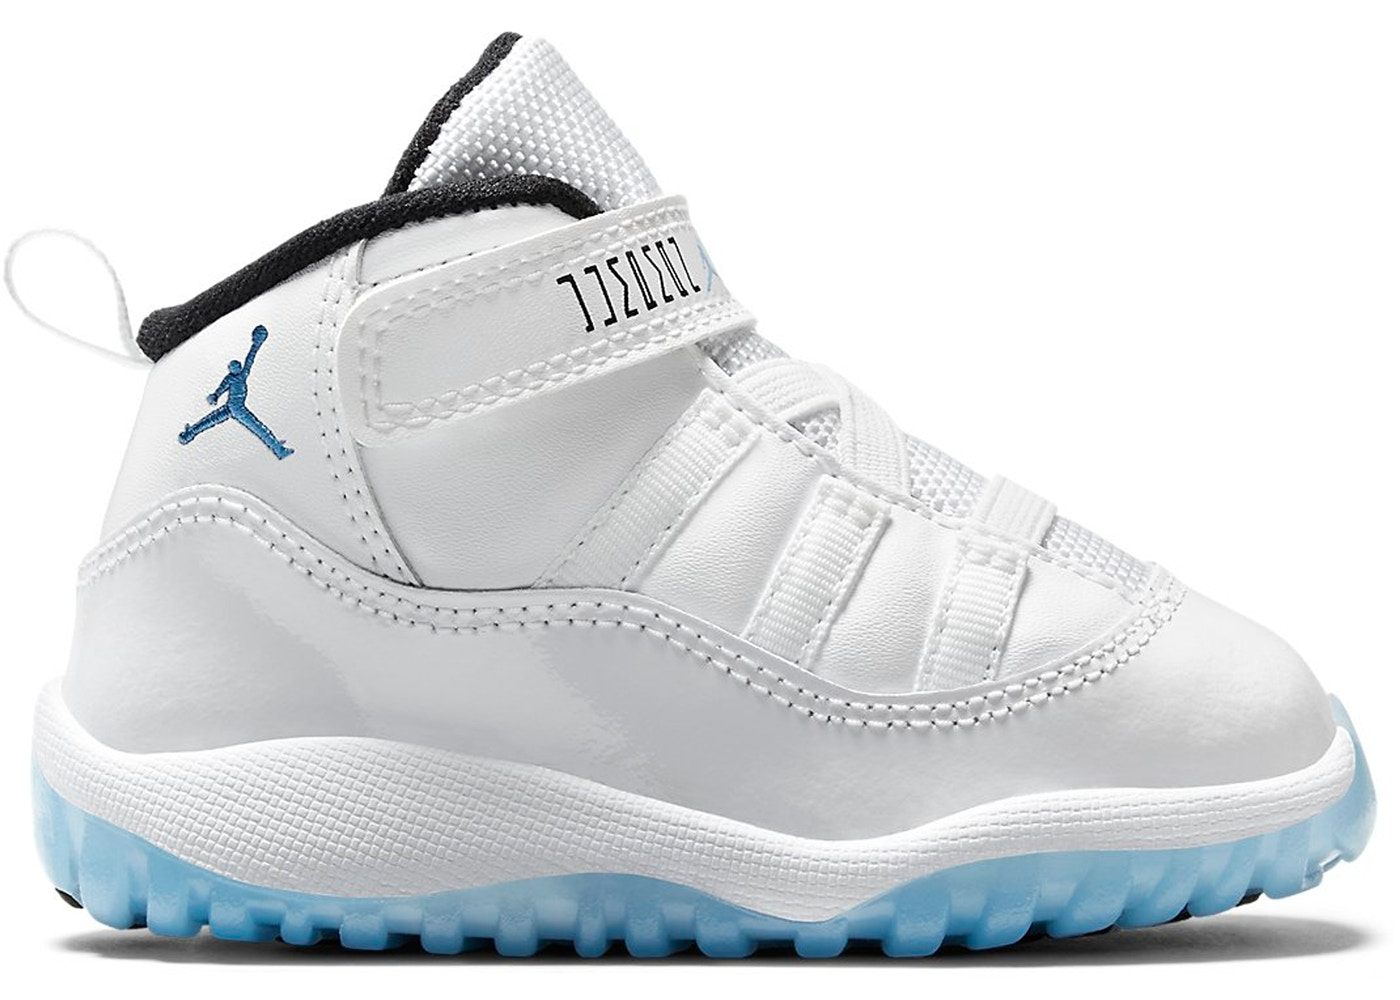 the best attitude 42429 e6841 Jordan 11 Retro Legend Blue (TD)